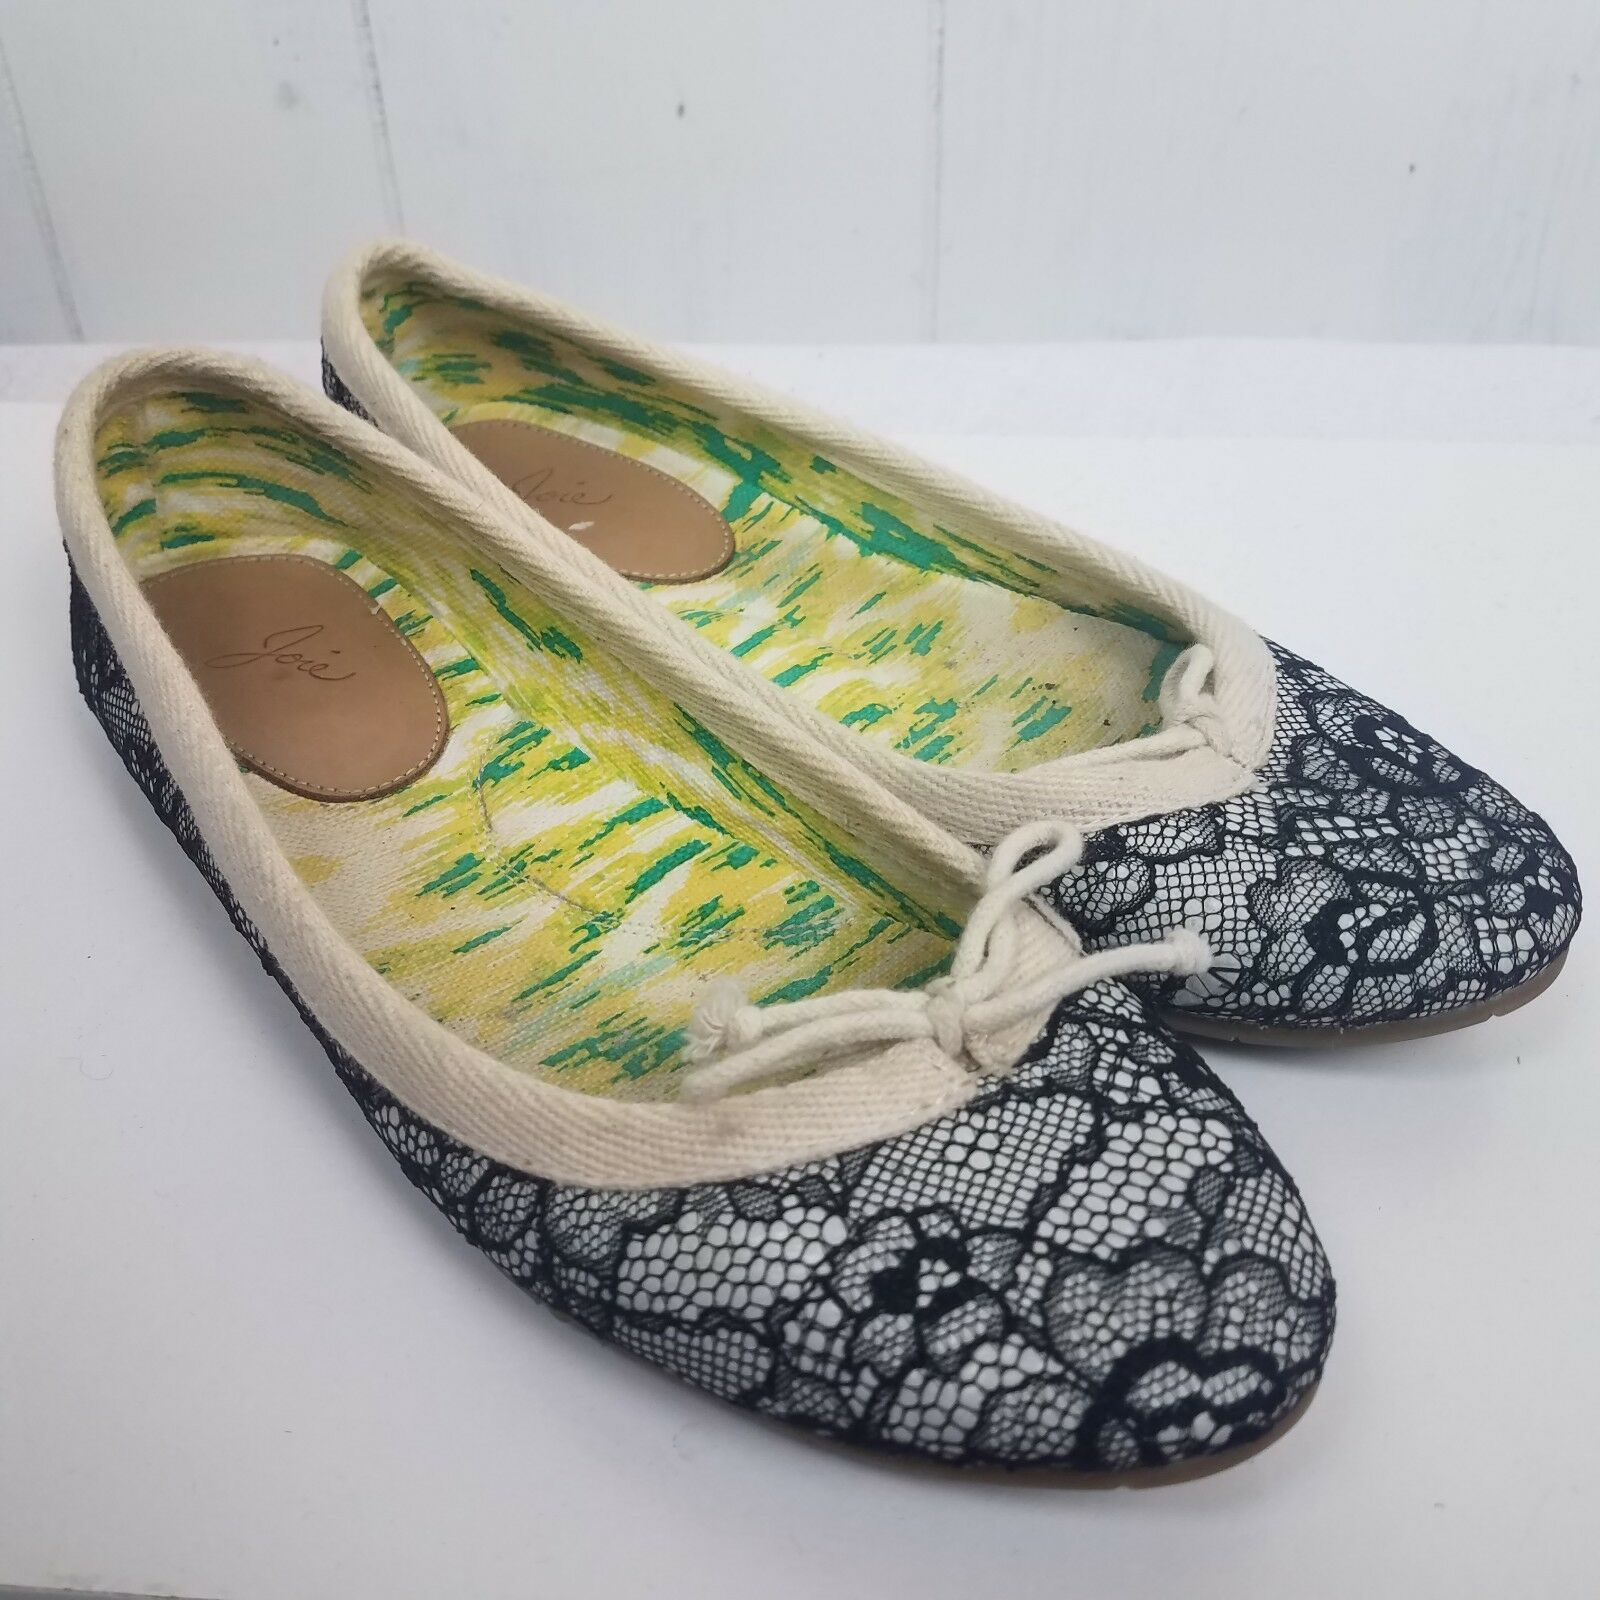 Joie Flats Sycamore shoes Size 37.5 lace canvas black cream Womens 7.5